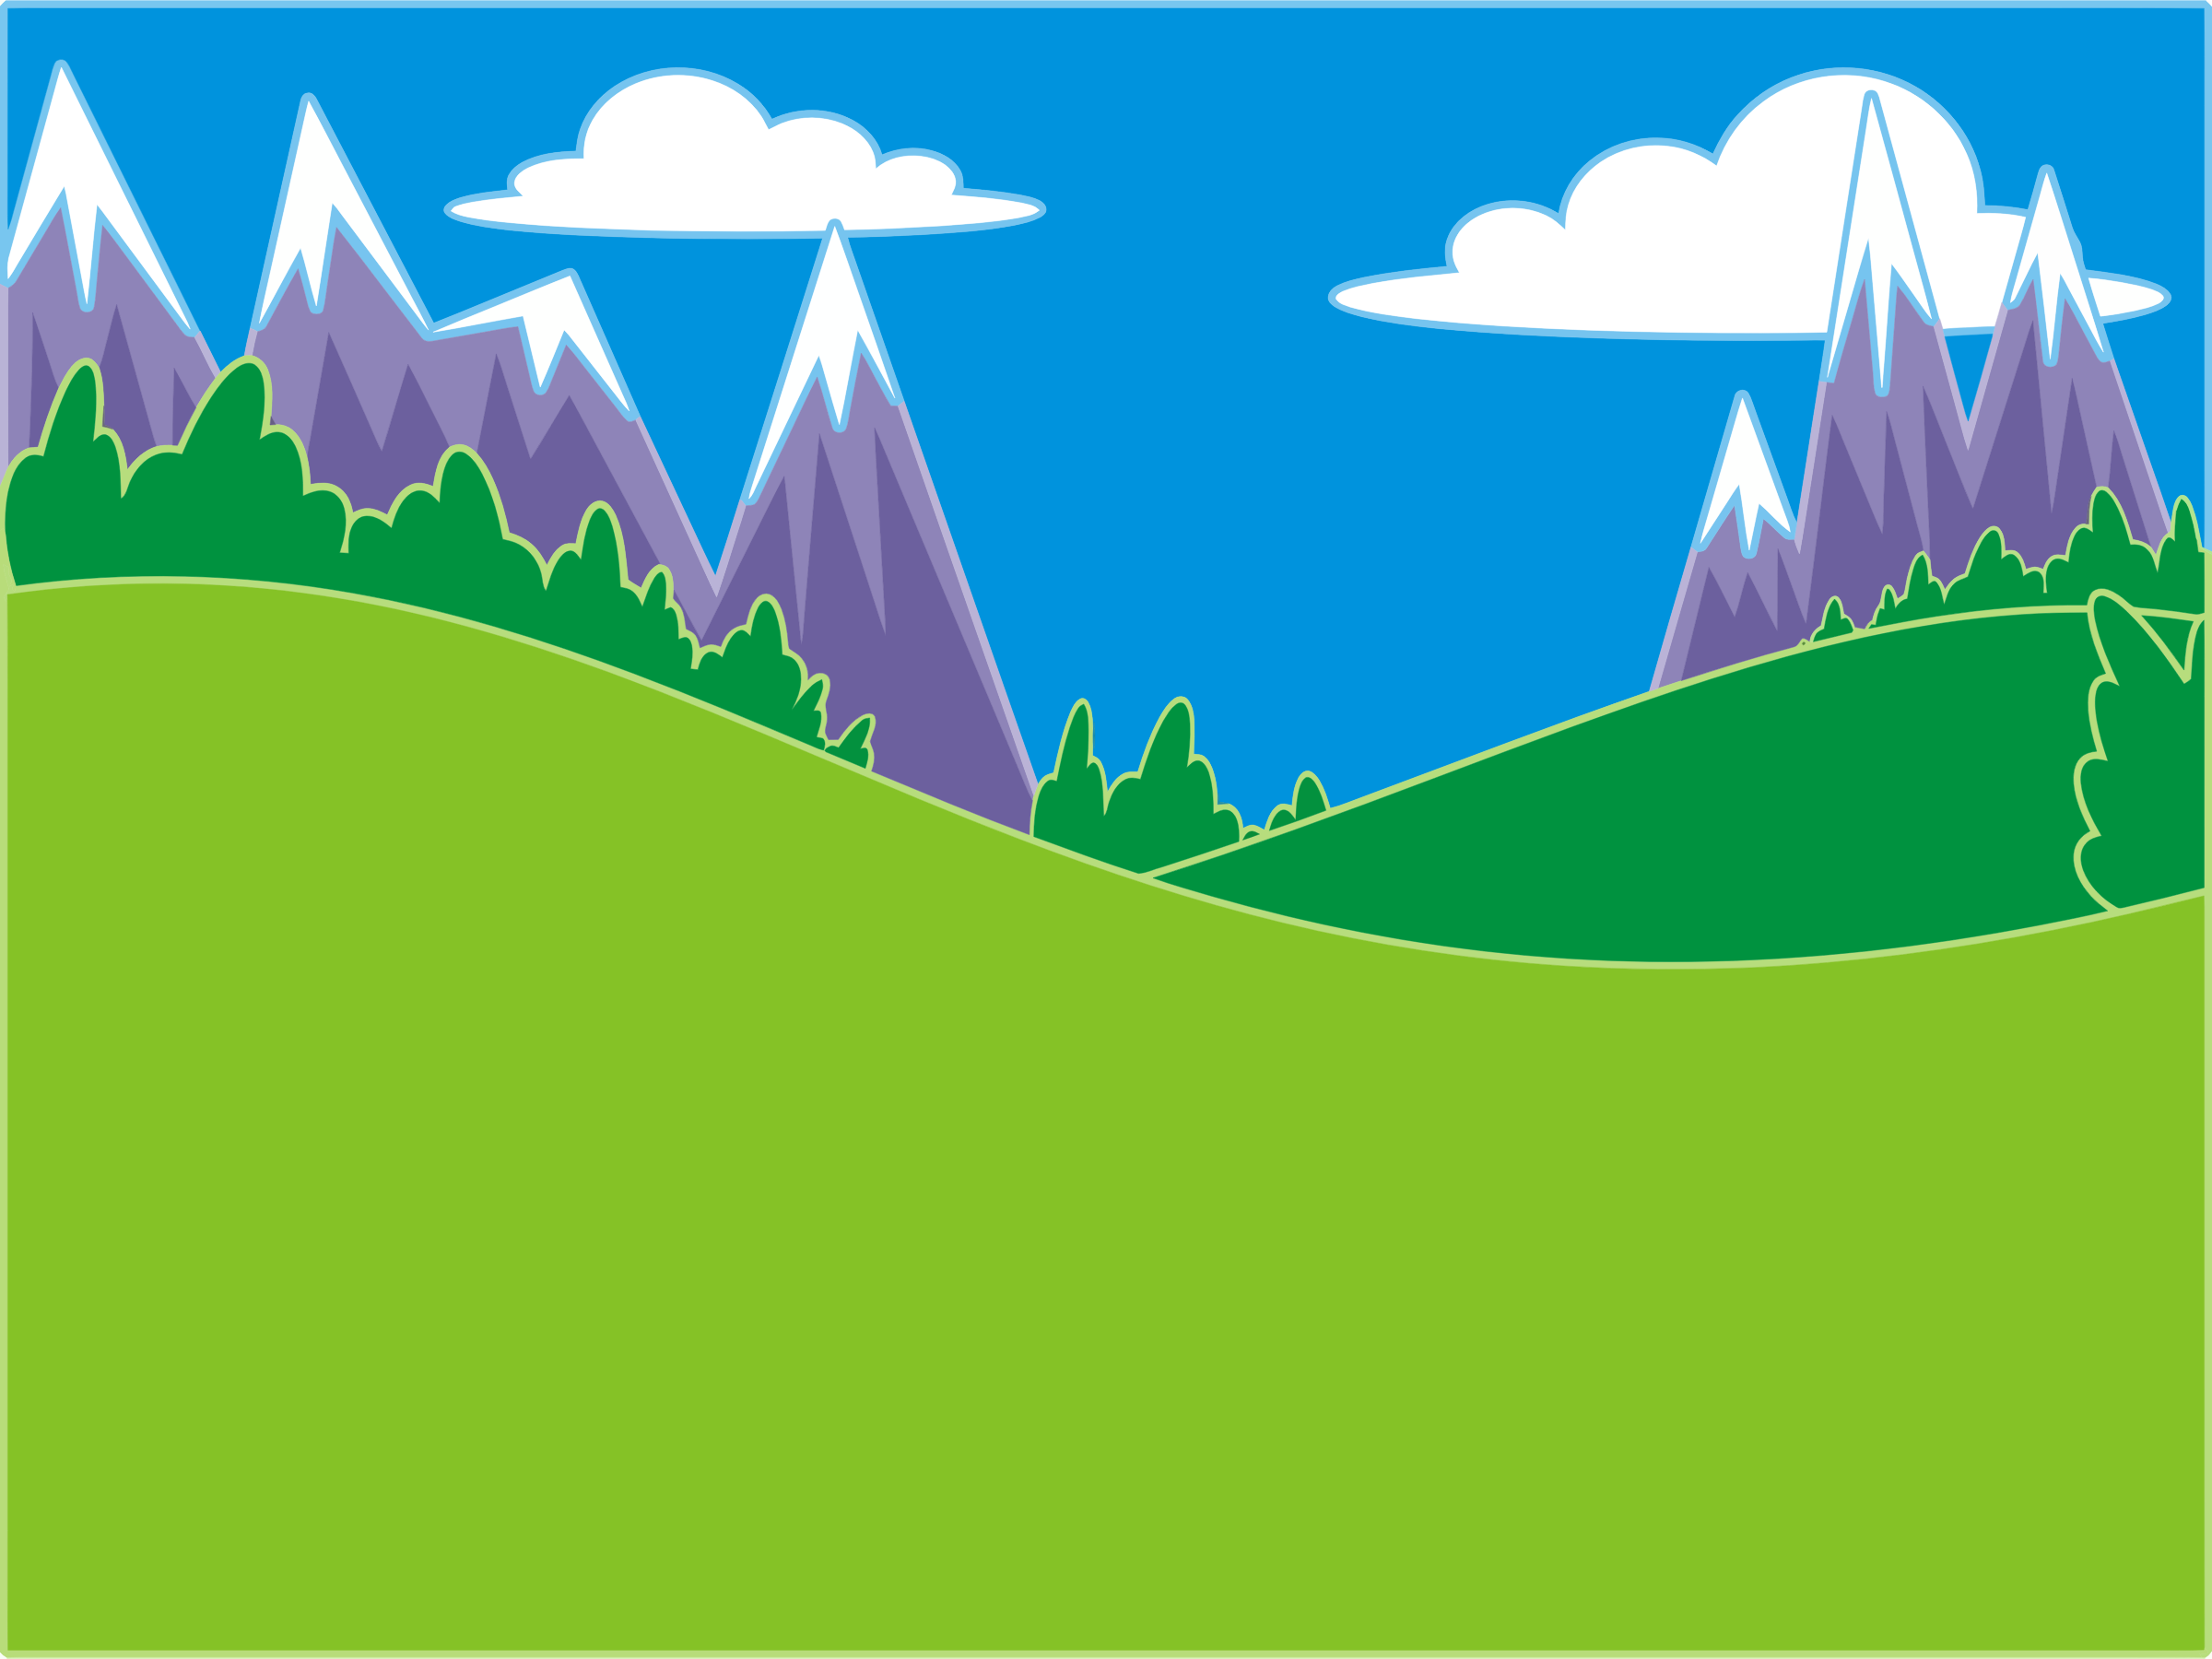 Green hills and by. Mountains clipart mountain landscape